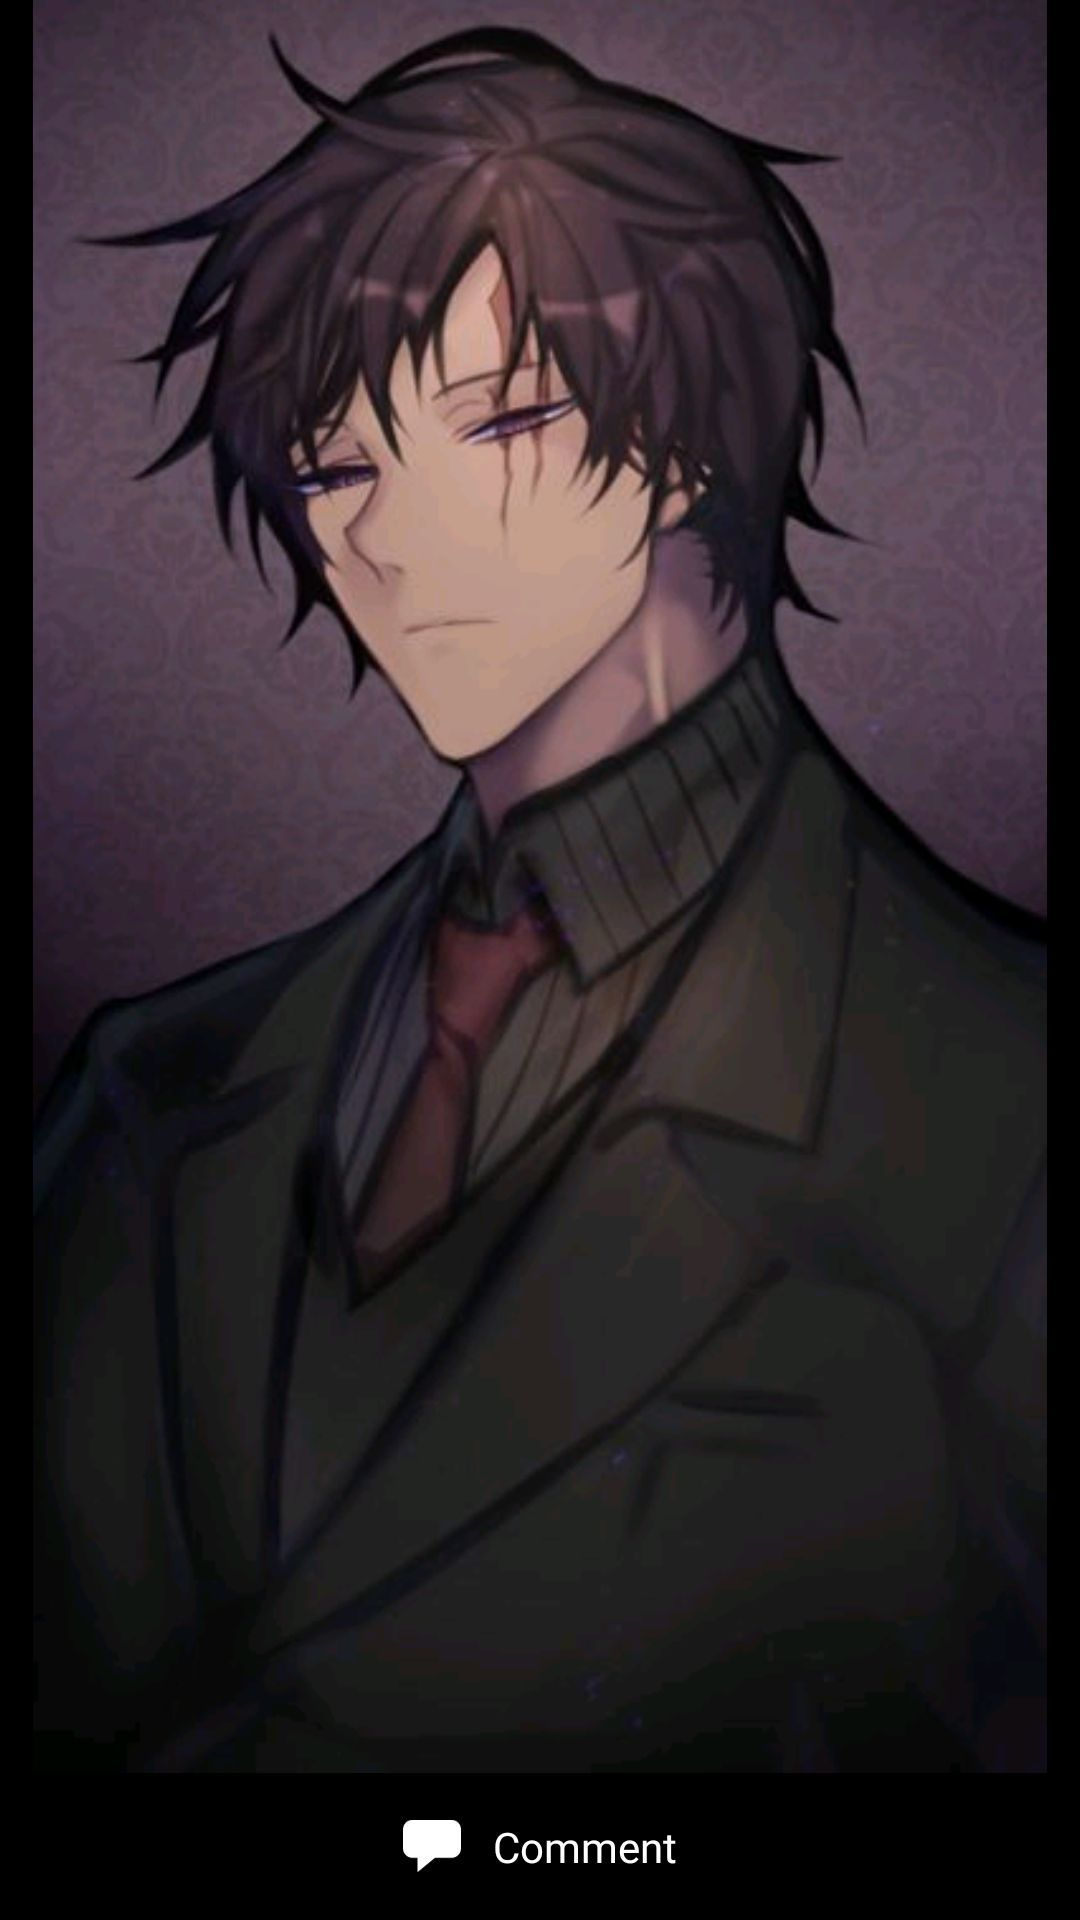 The Older Brother We Crave Anime Guys With Glasses Black Hair Anime Guy Handsome Anime